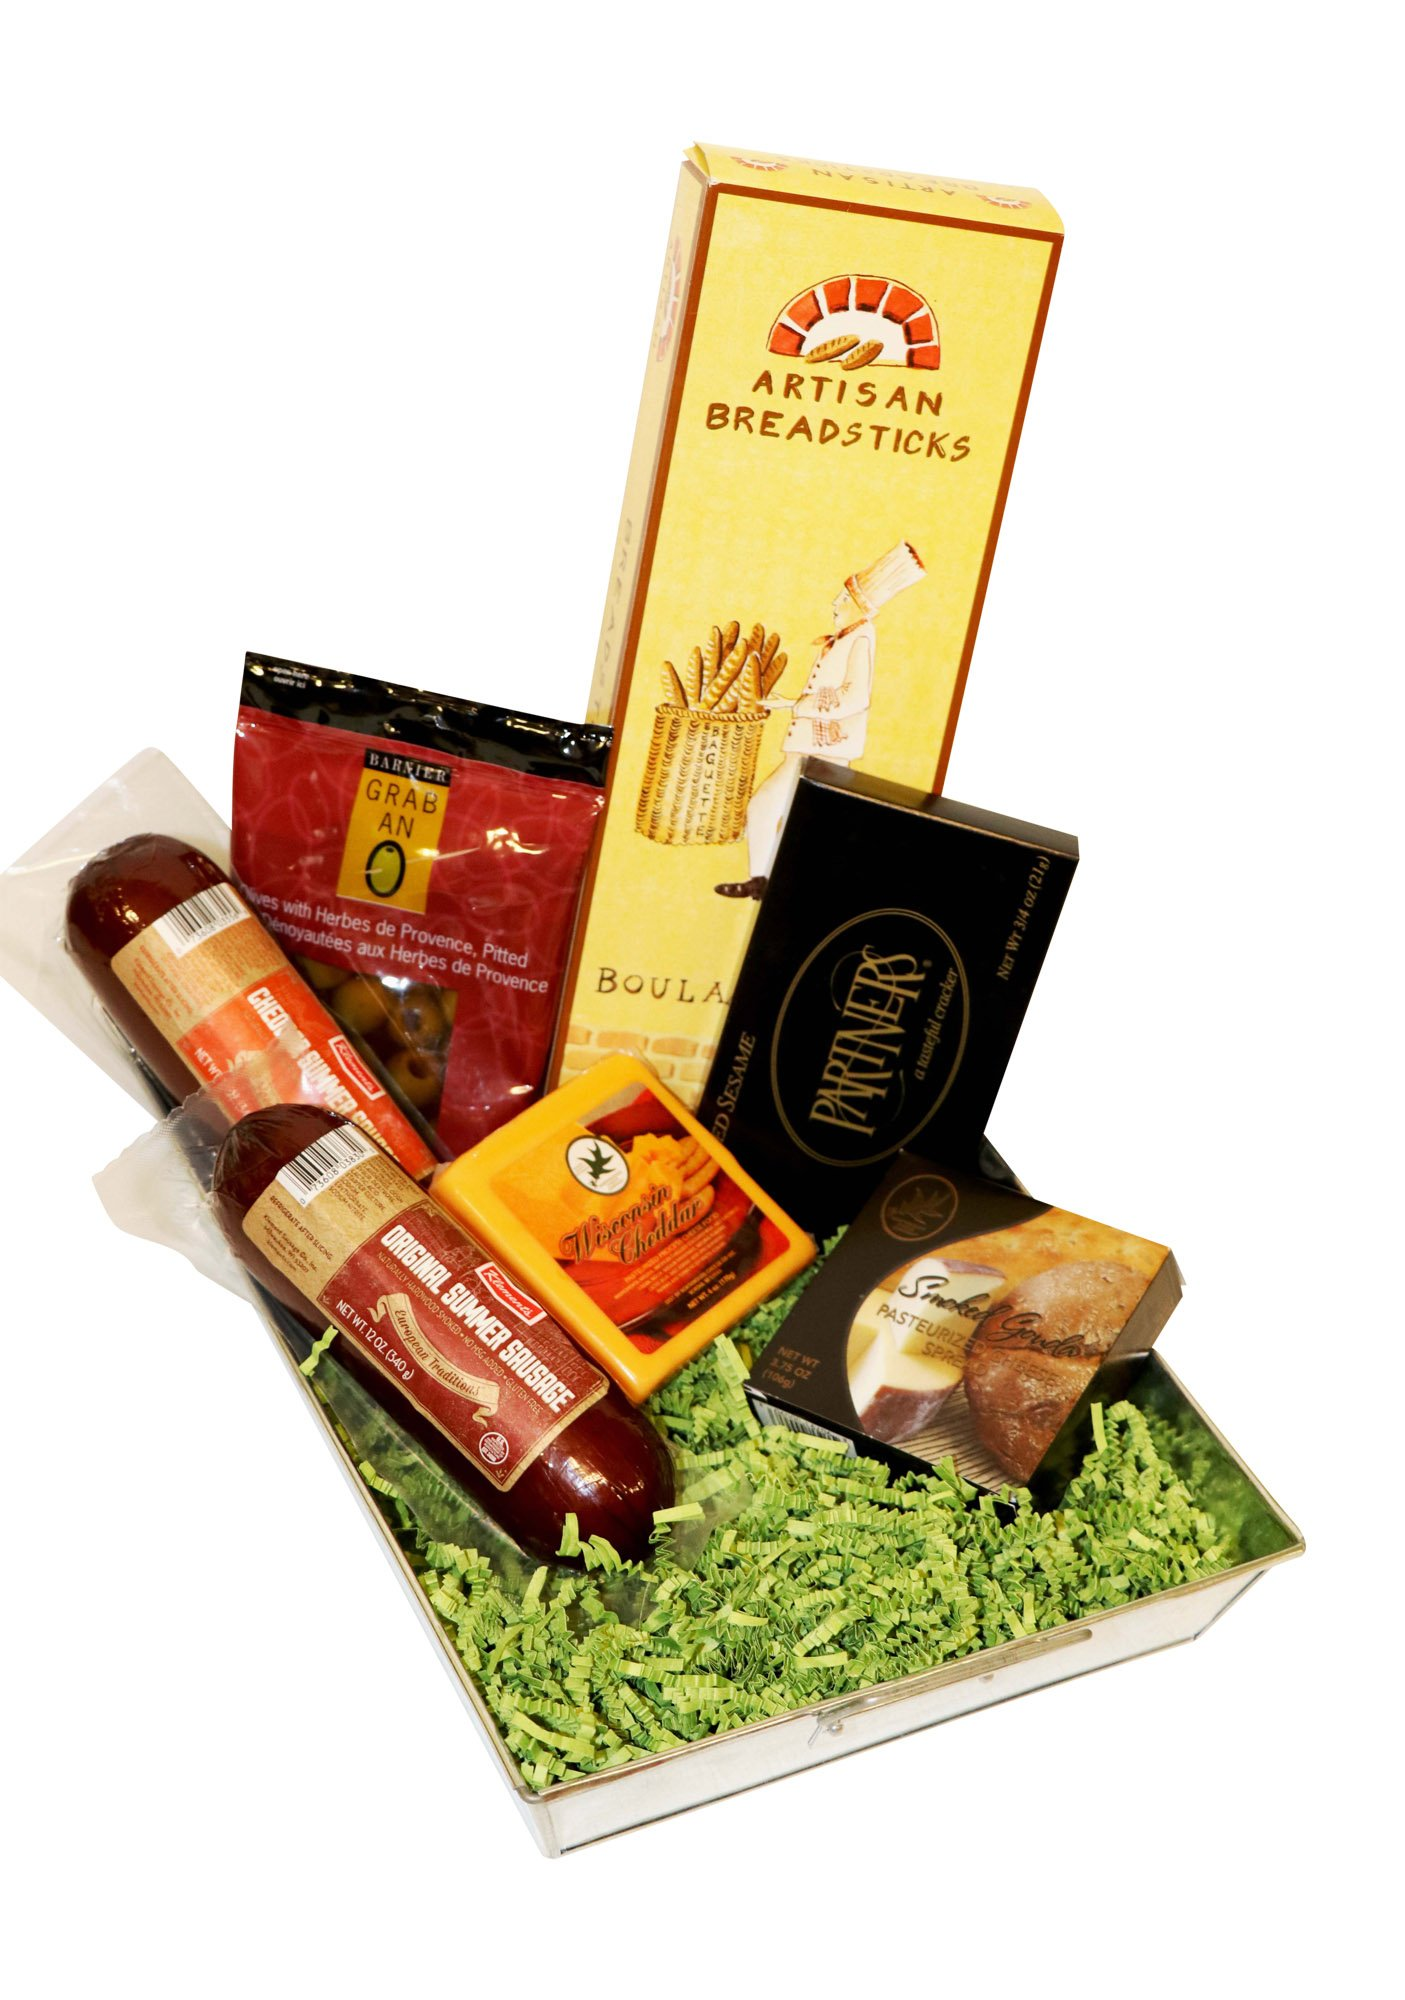 Summer Sausage and Wisconsin Cheese Gift Baskets Tray with Klement's Meat and Cheddar and Smoked Gouda Cheeses